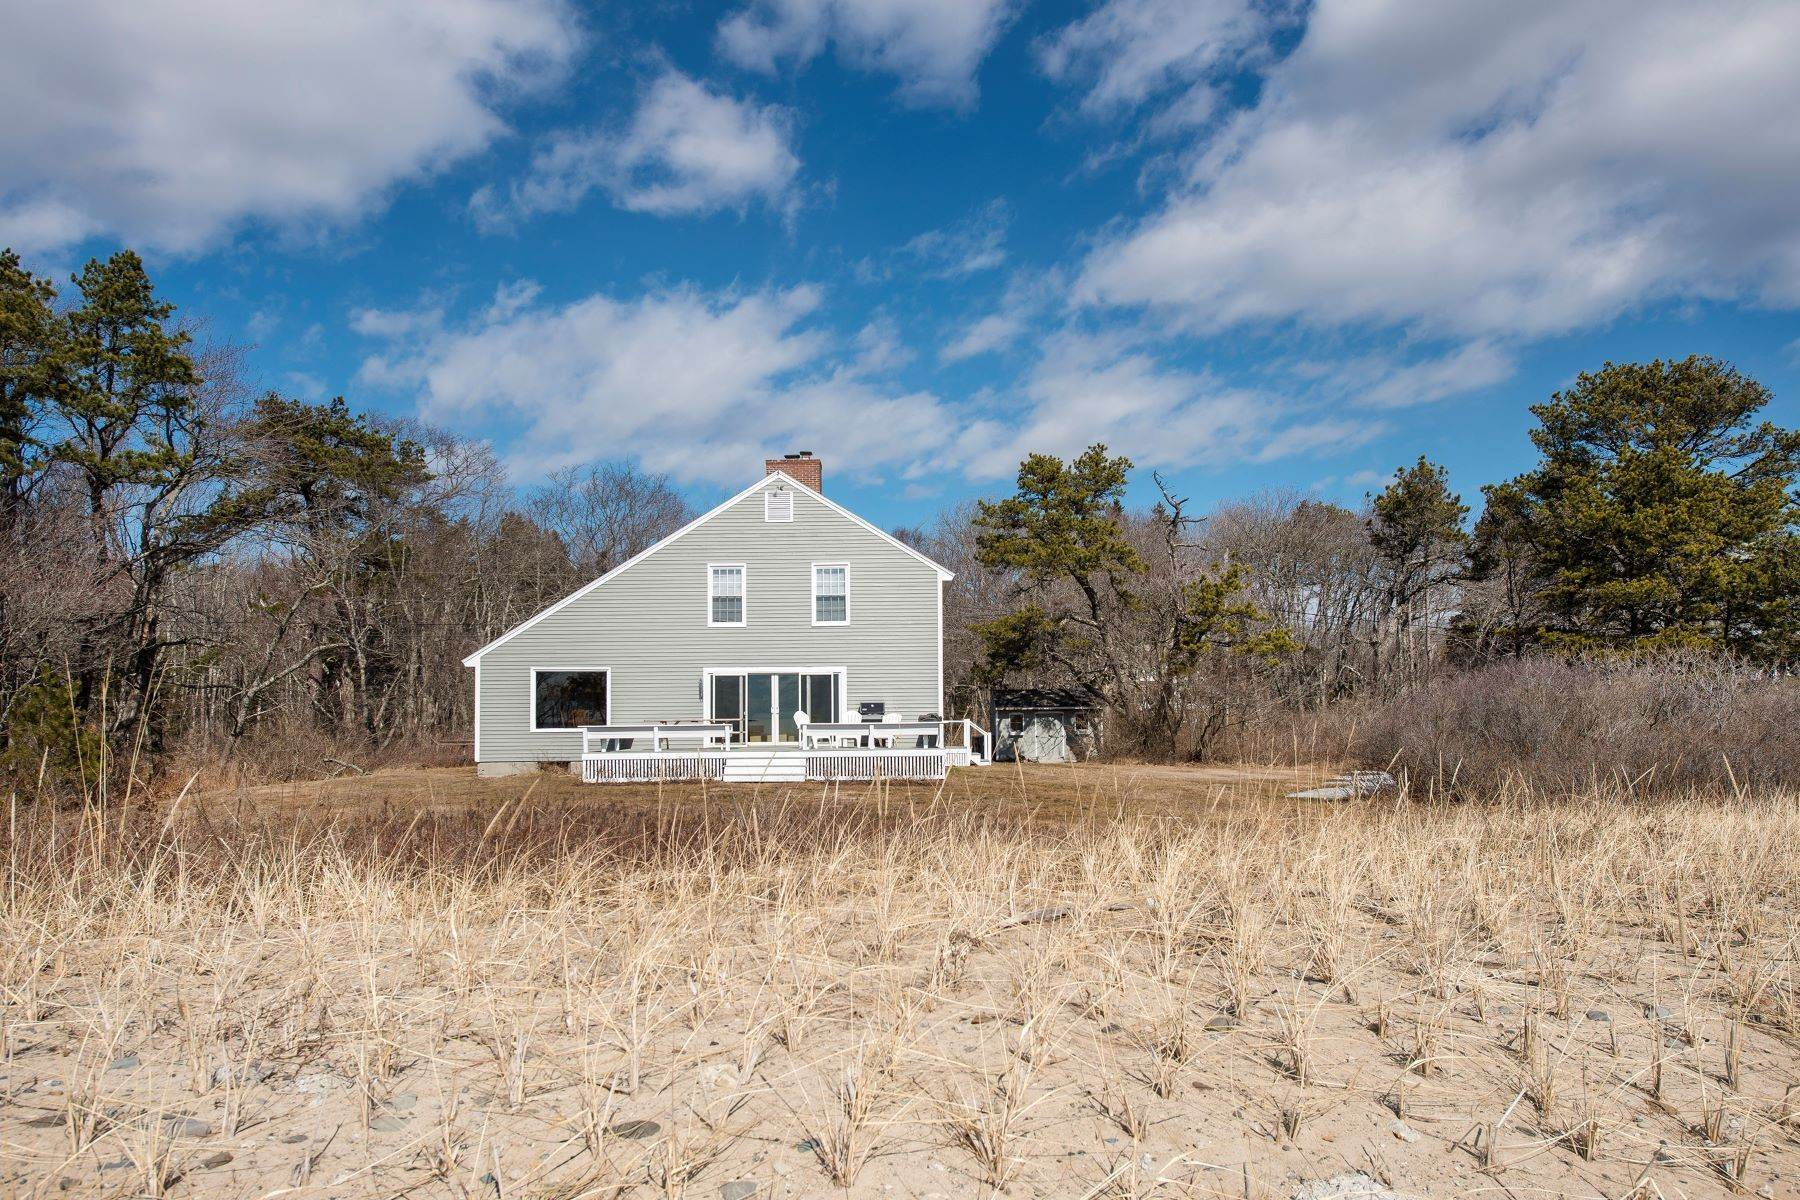 3. Other Residential Homes at Sandpiper 22 Crescent Surf Road, Kennebunk, ME 04043